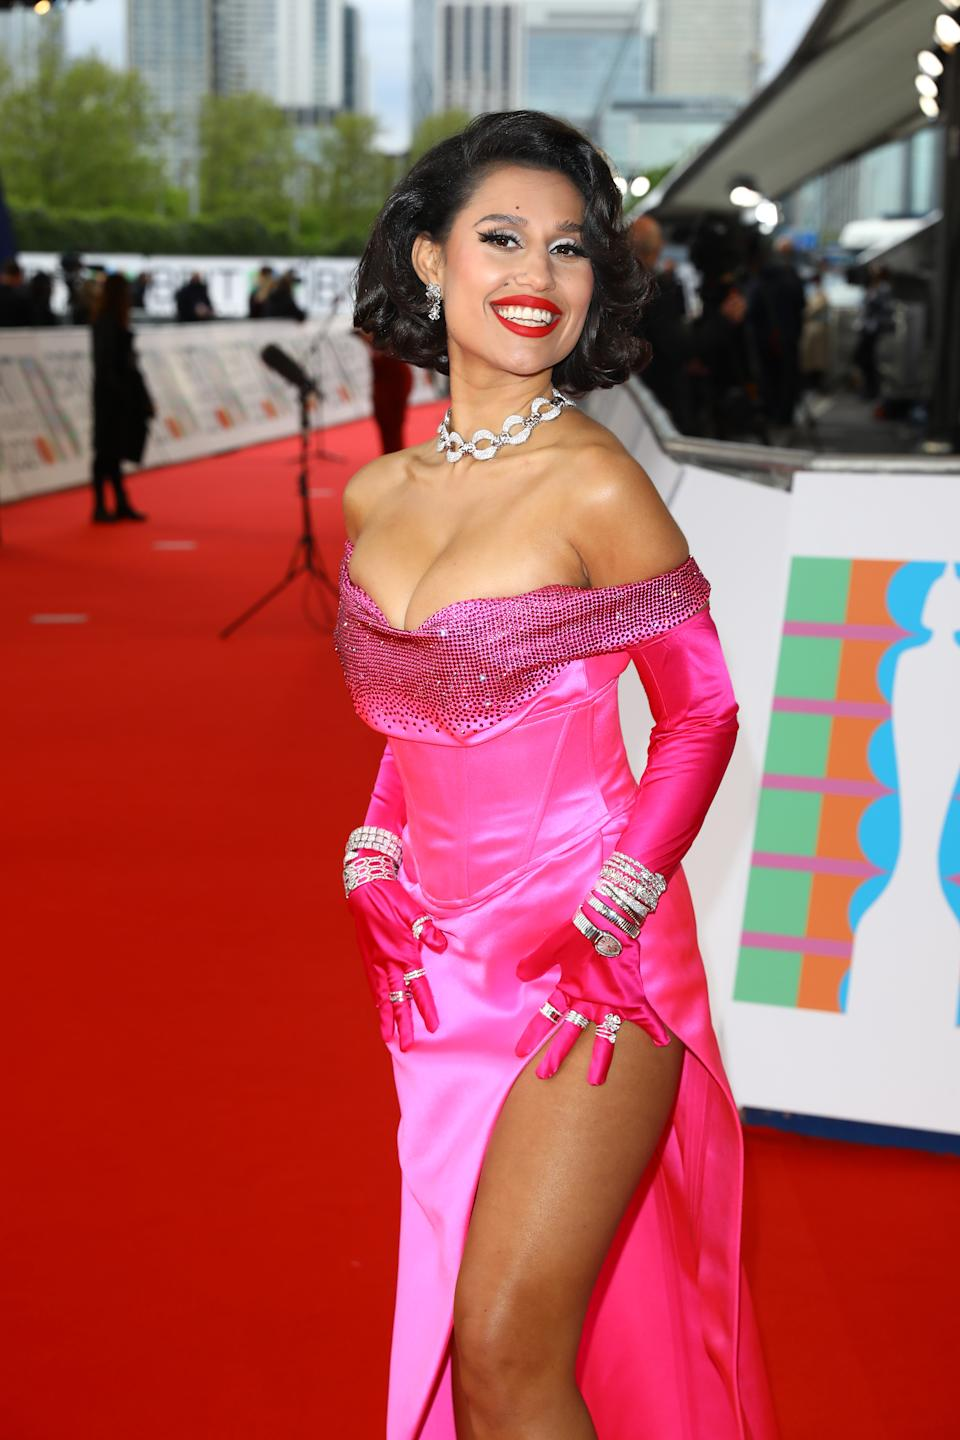 Raye arrives at The BRIT Awards 2021 at The O2 Arena on May 11, 2021 in London, England